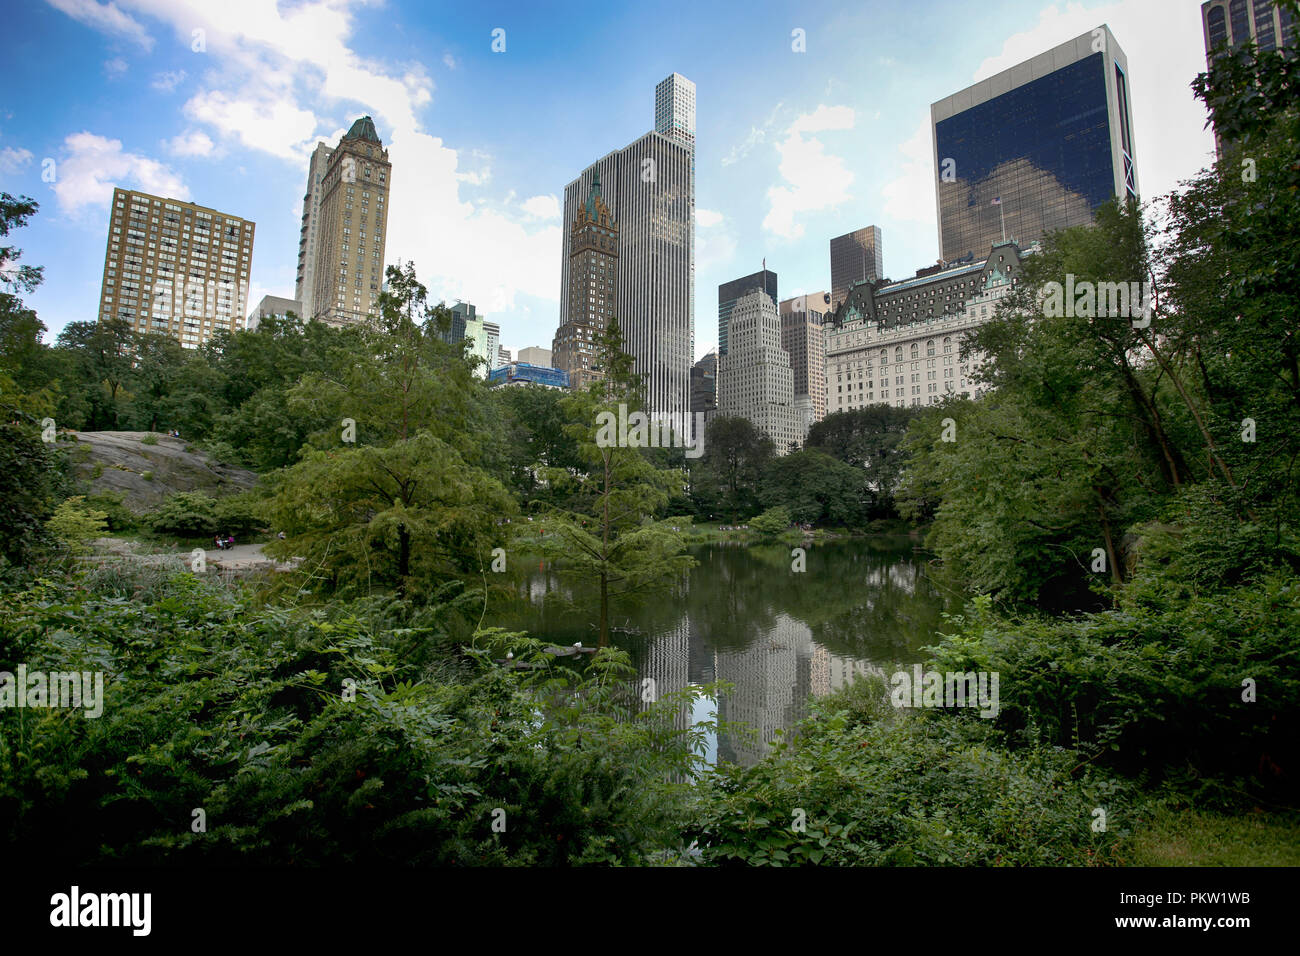 View on skyscrapers from Gapstow Bridge in Central Park, New York, USA - Stock Image